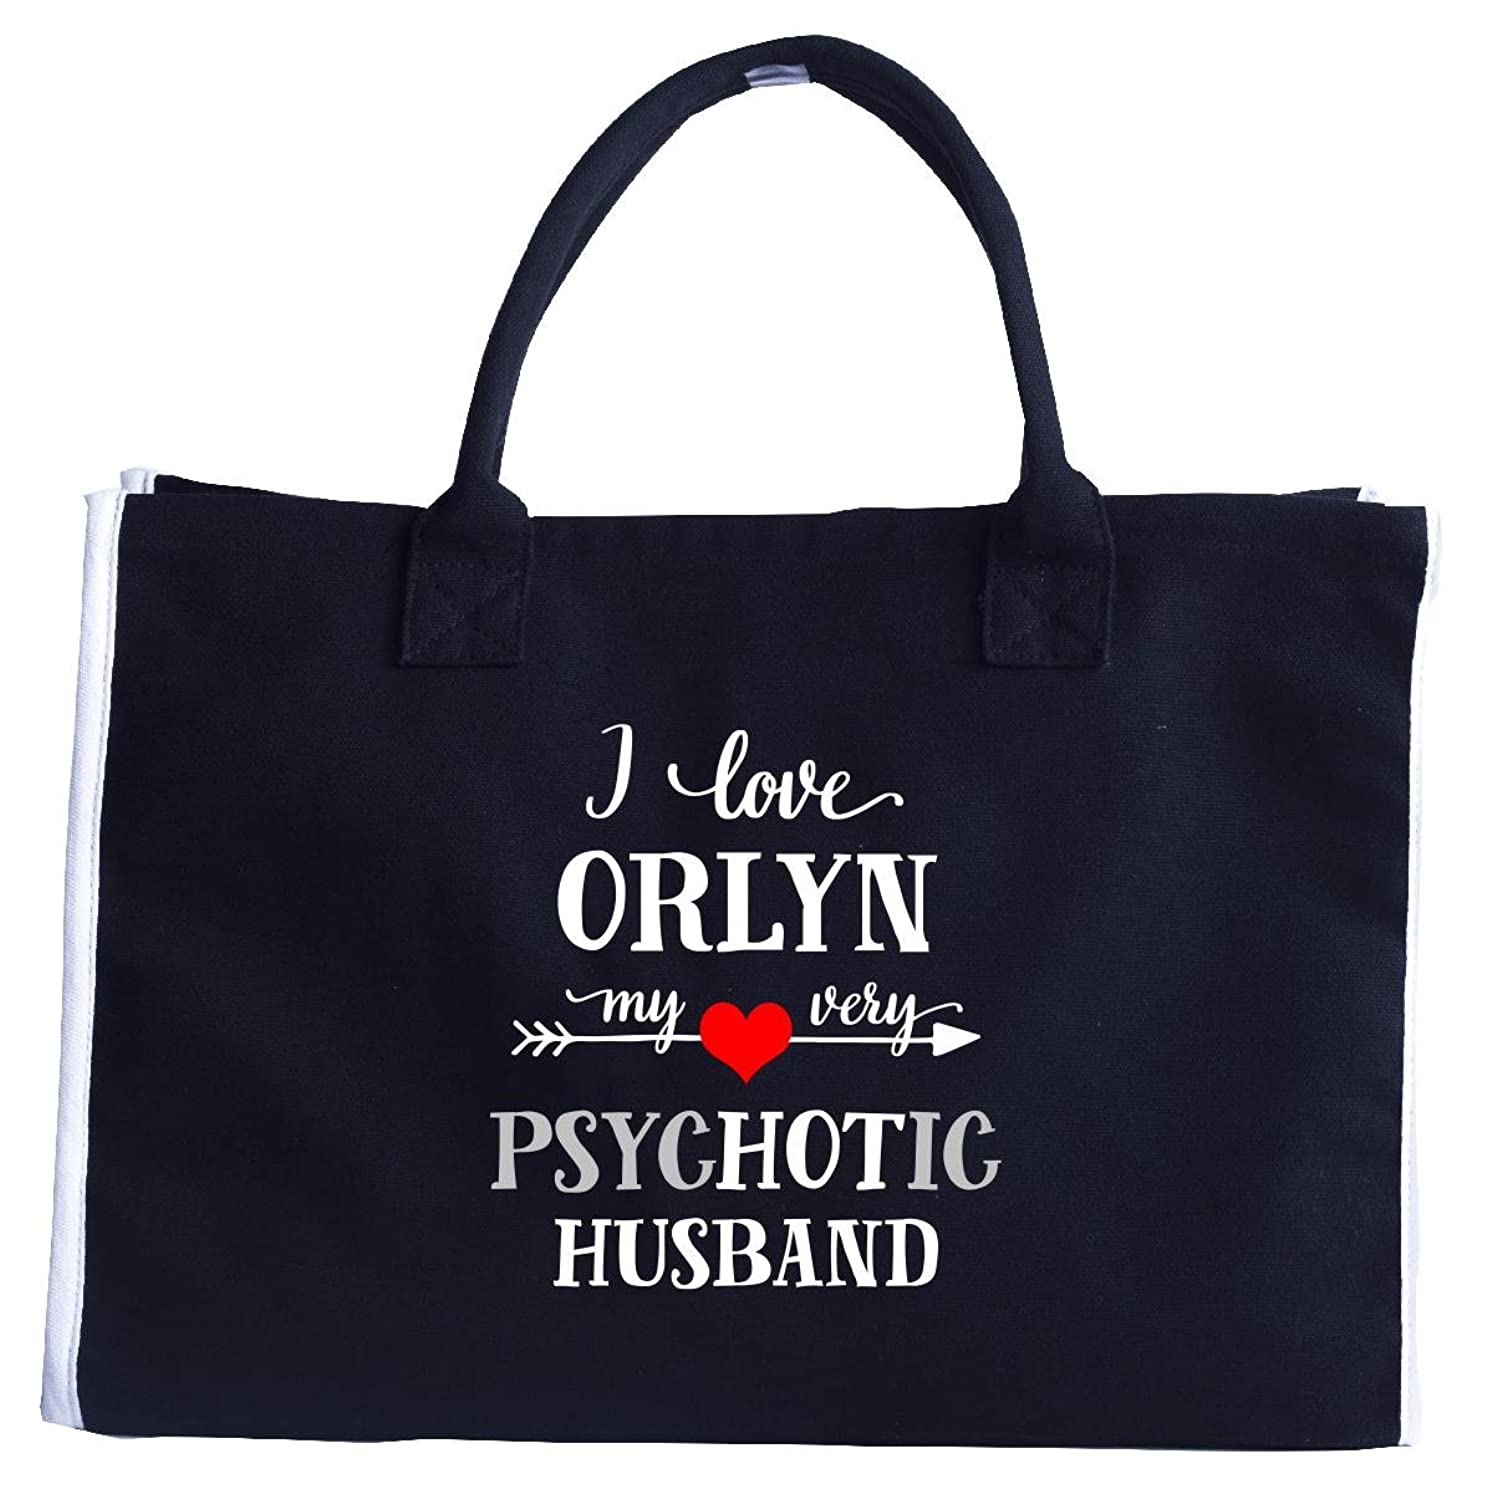 I Love Orlyn My Very Psychotic Husband. Gift For Her - Fashion Tote Bag